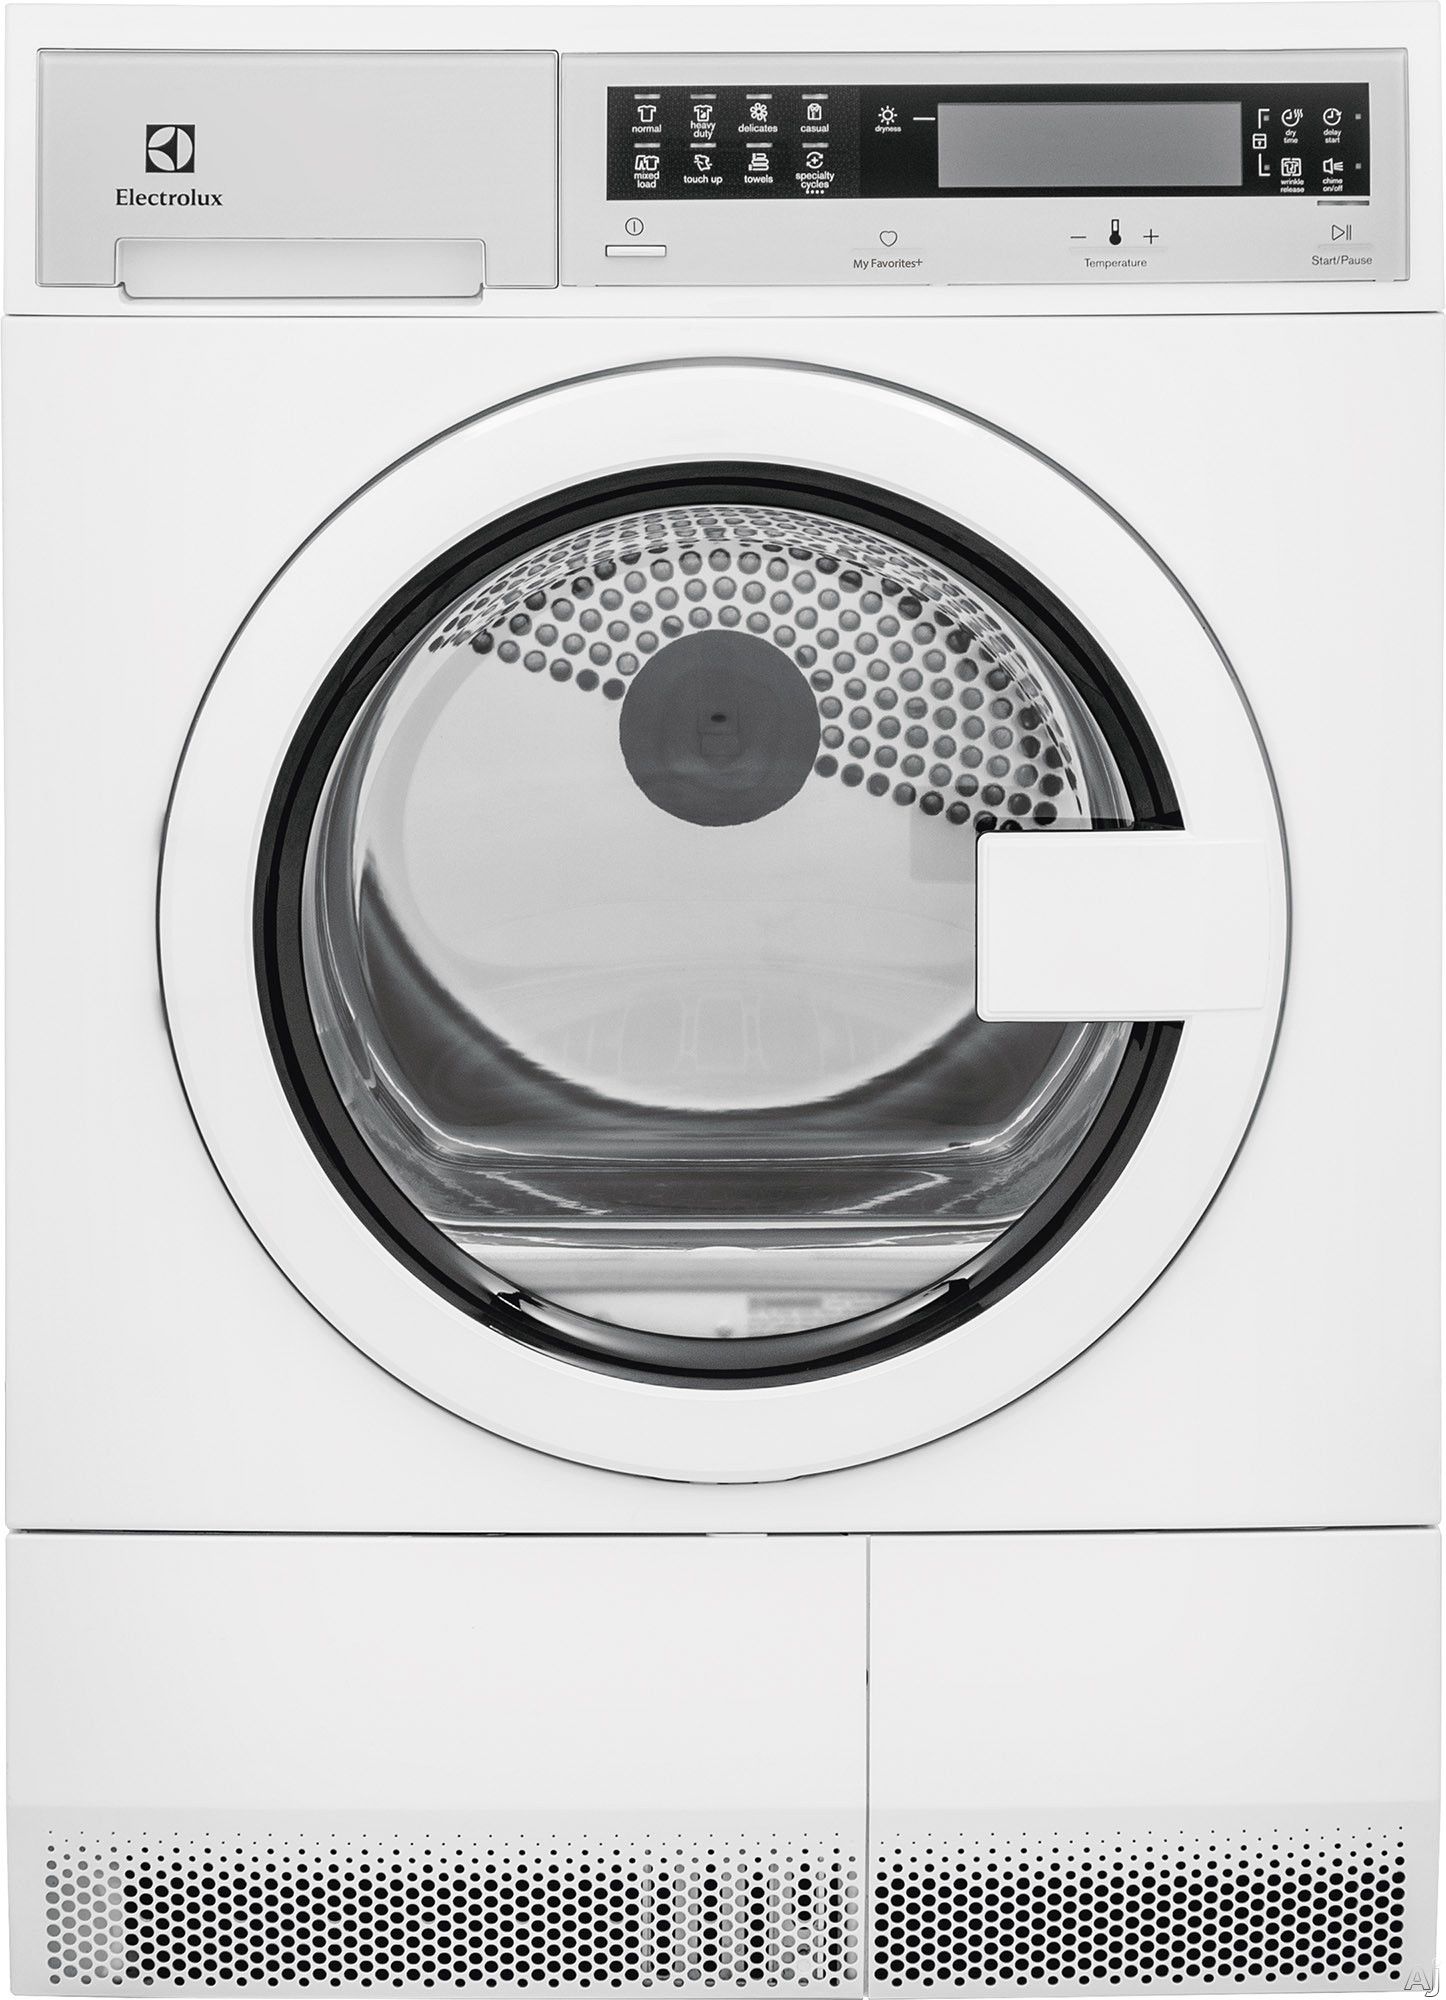 "Electrolux EFDE210TI 24 Inch Ventless Electric Dryer with IQ-Touch Controlsâ""¢, Fast Dry, My Favorite Cycle, Reverse Tumble, Stainless Steel Tub, Interior Lighting, Reversible Door, 7 Cycles and 4.0 cu. ft. Capacity"